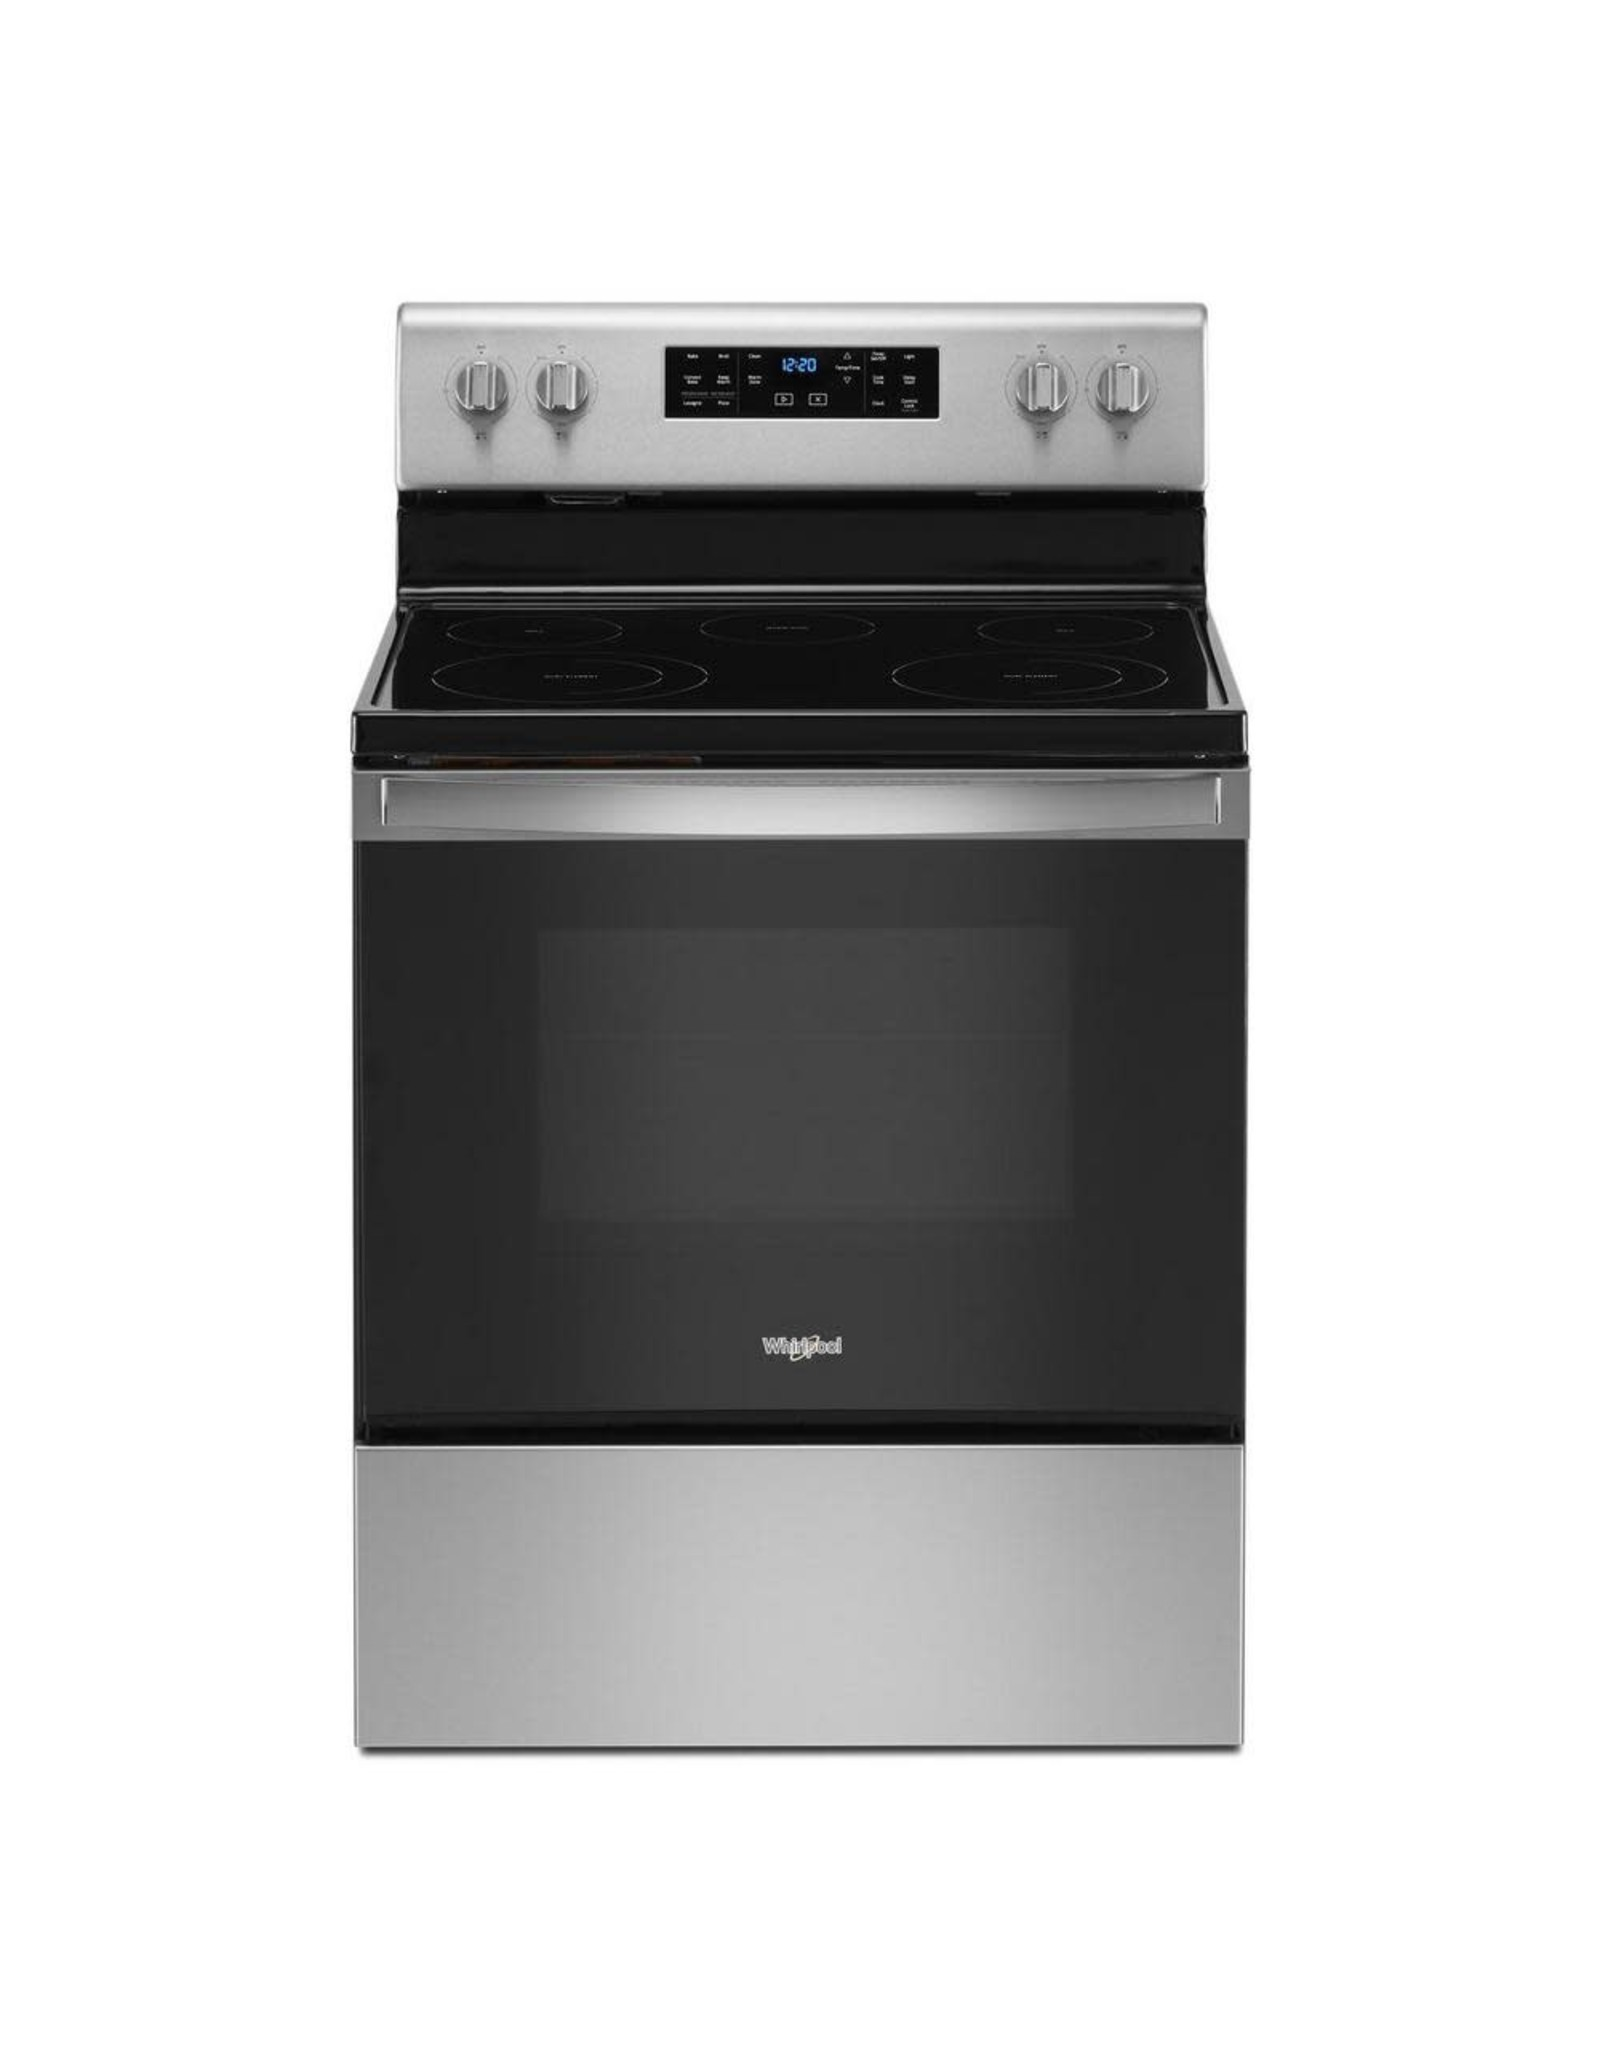 WHIRLPOOL WFE535S0JS 30 in. 5.3 cu. ft. Electric Range with 5-Elements and Frozen Bake Technology in Stainless Steel